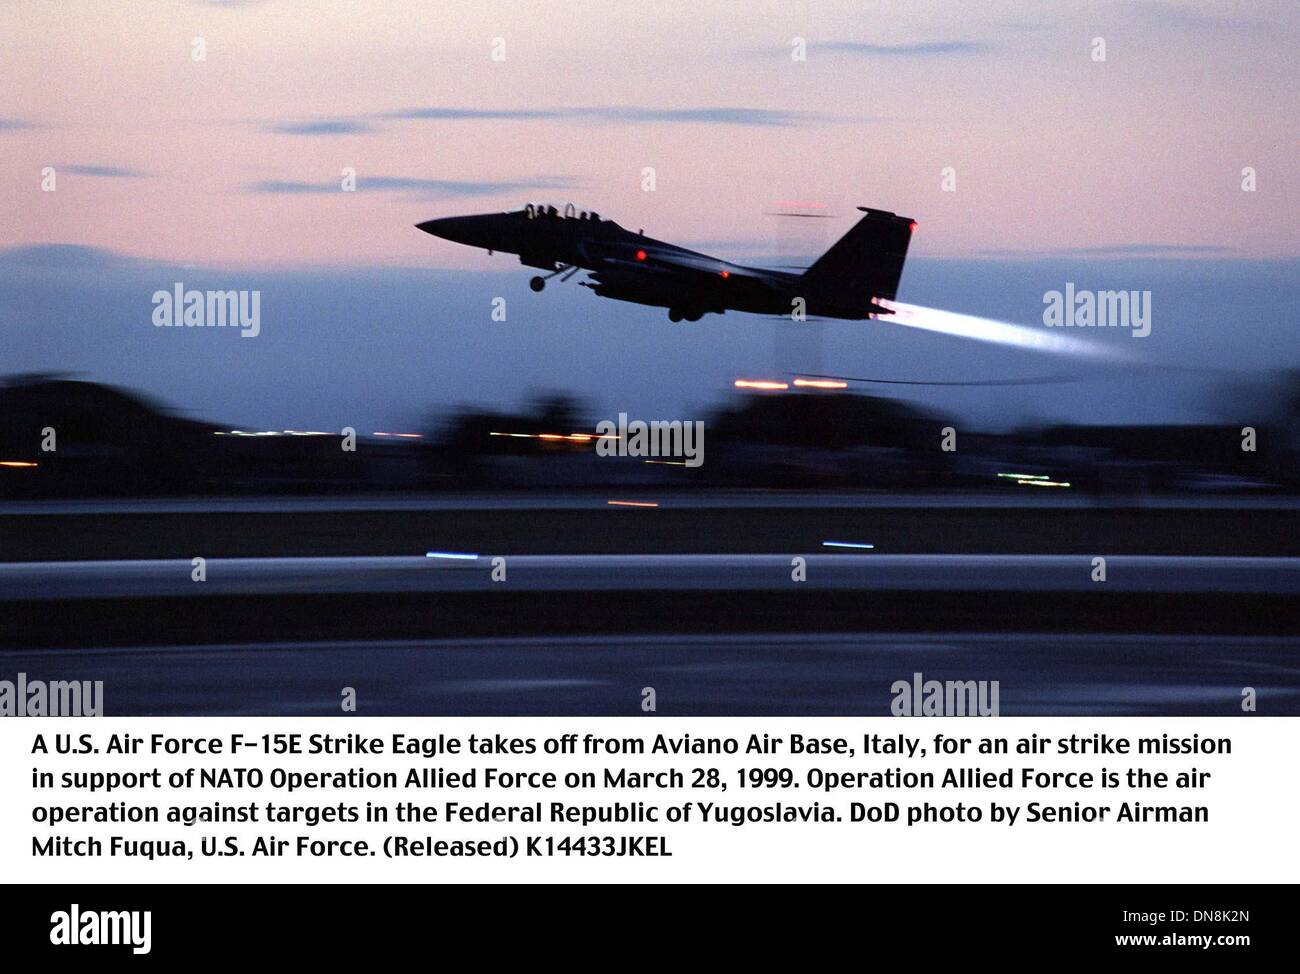 Mar. 1, 1999 - Aviano Air Base, Pordenone, Italy - K14433JKEL       990328-F-4728F-015..A U.S. Air Force F-15E Strike Eagle takes off from Aviano Air Base, Italy, for an air strike mission in support of NATO Operation Allied Force on March 28, 1999.  Operation Allied Force is the air operation against targets in the Federal Republic of Yugoslavia.  DoD  Senior Airman Mitch Fuqua, U - Stock Image